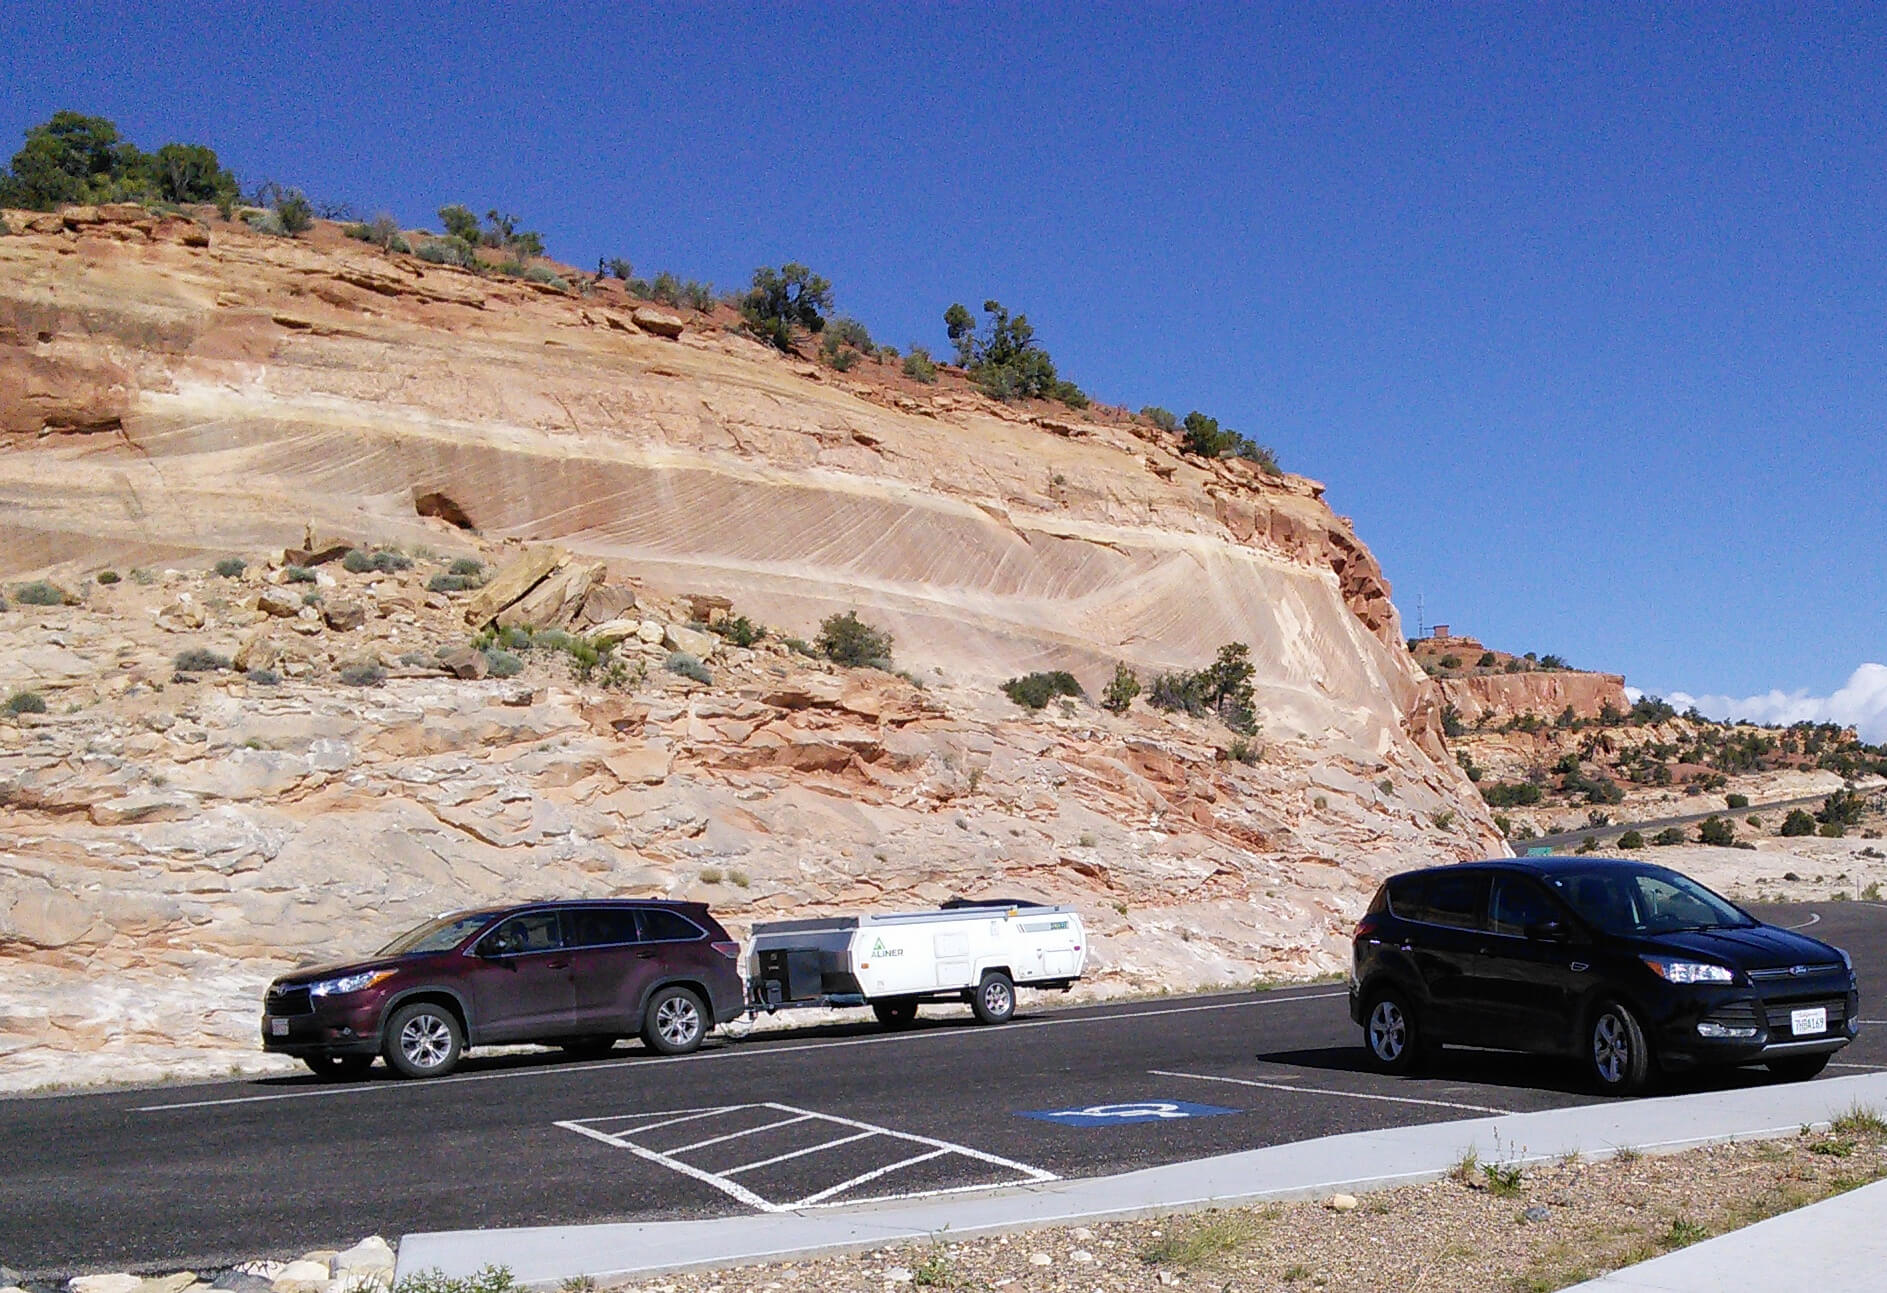 On the way to Capitol Reef National Park, Utah